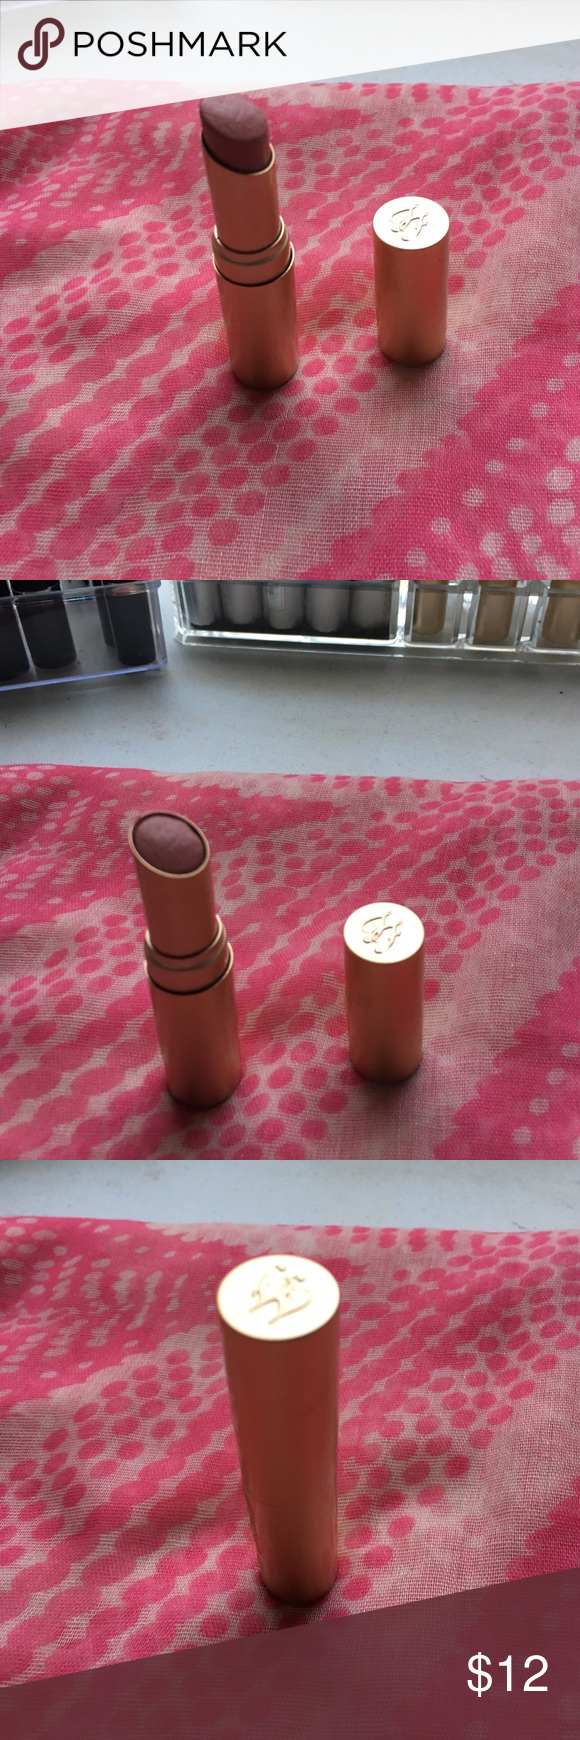 Too Faced le creme lipstick Gentle used an sanitized. I have doubles so selling one. Best moisturizing lipstick in color nude beach...pink nude Too Faced Makeup Lipstick